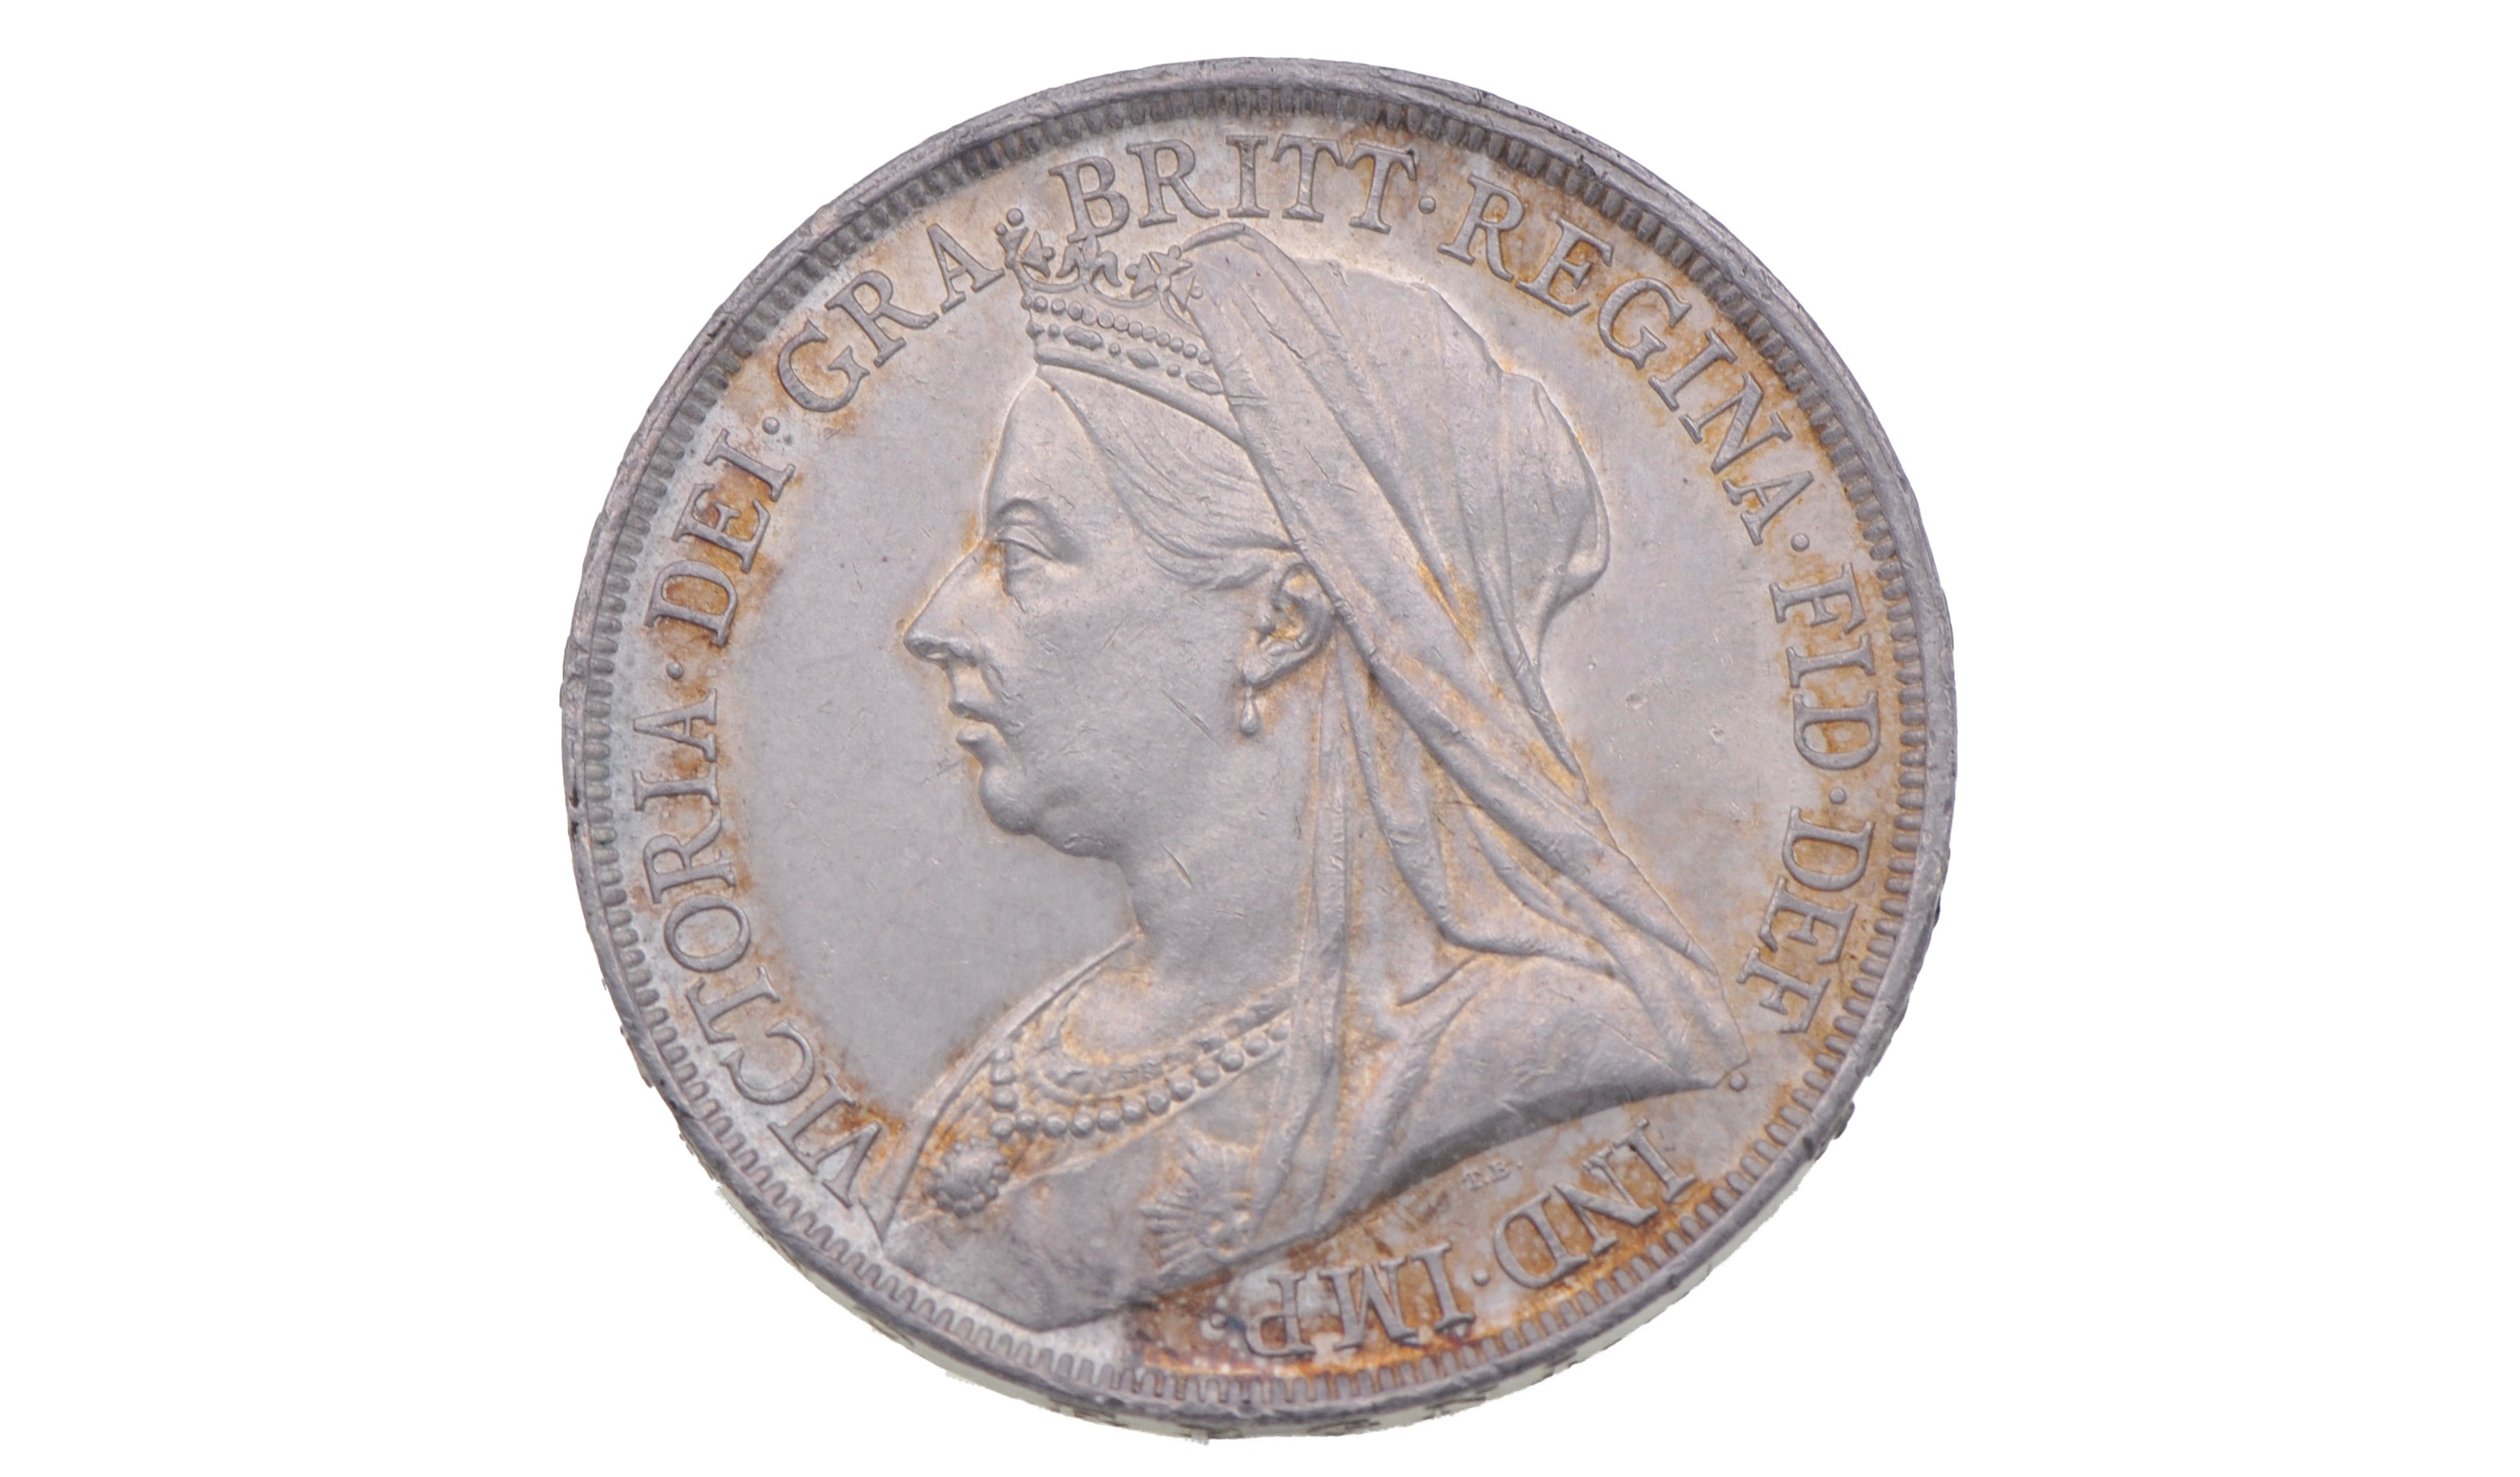 Crown coins that were made before 1920 are worth around £13, according to the Britannia Coin Company calculator